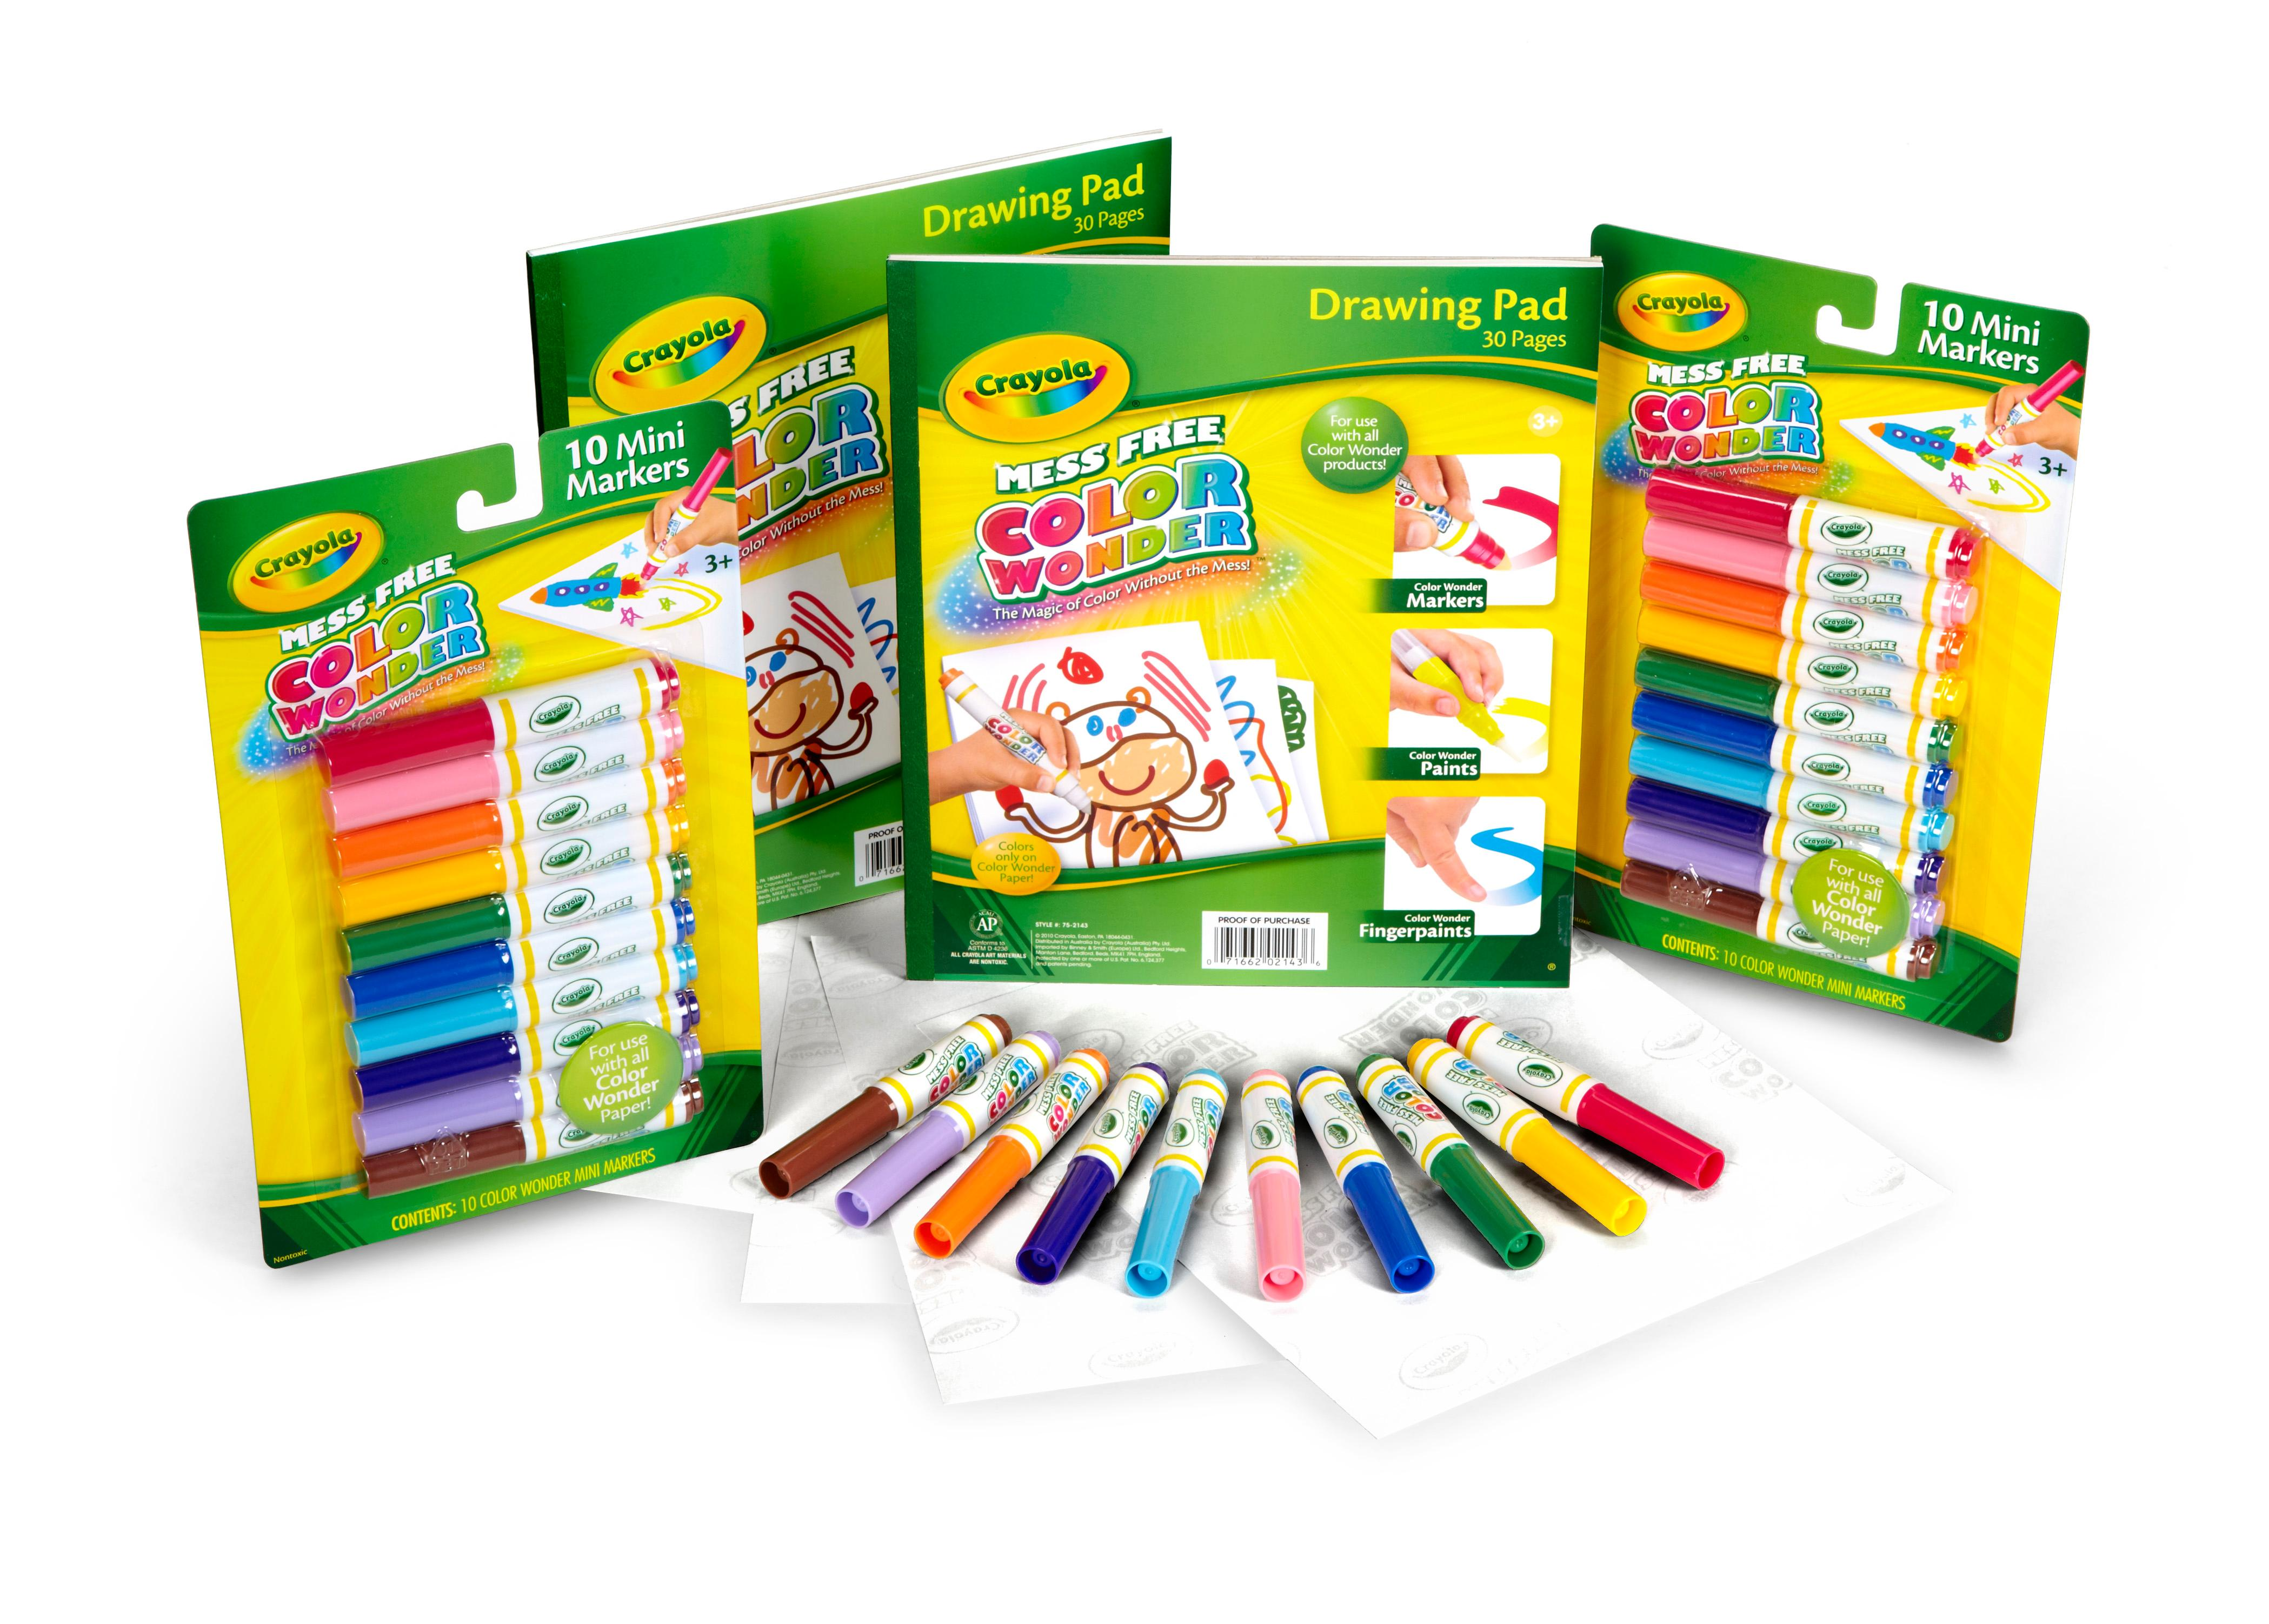 Amazon.com: Crayola Color Wonder Refill Set: Toys & Games